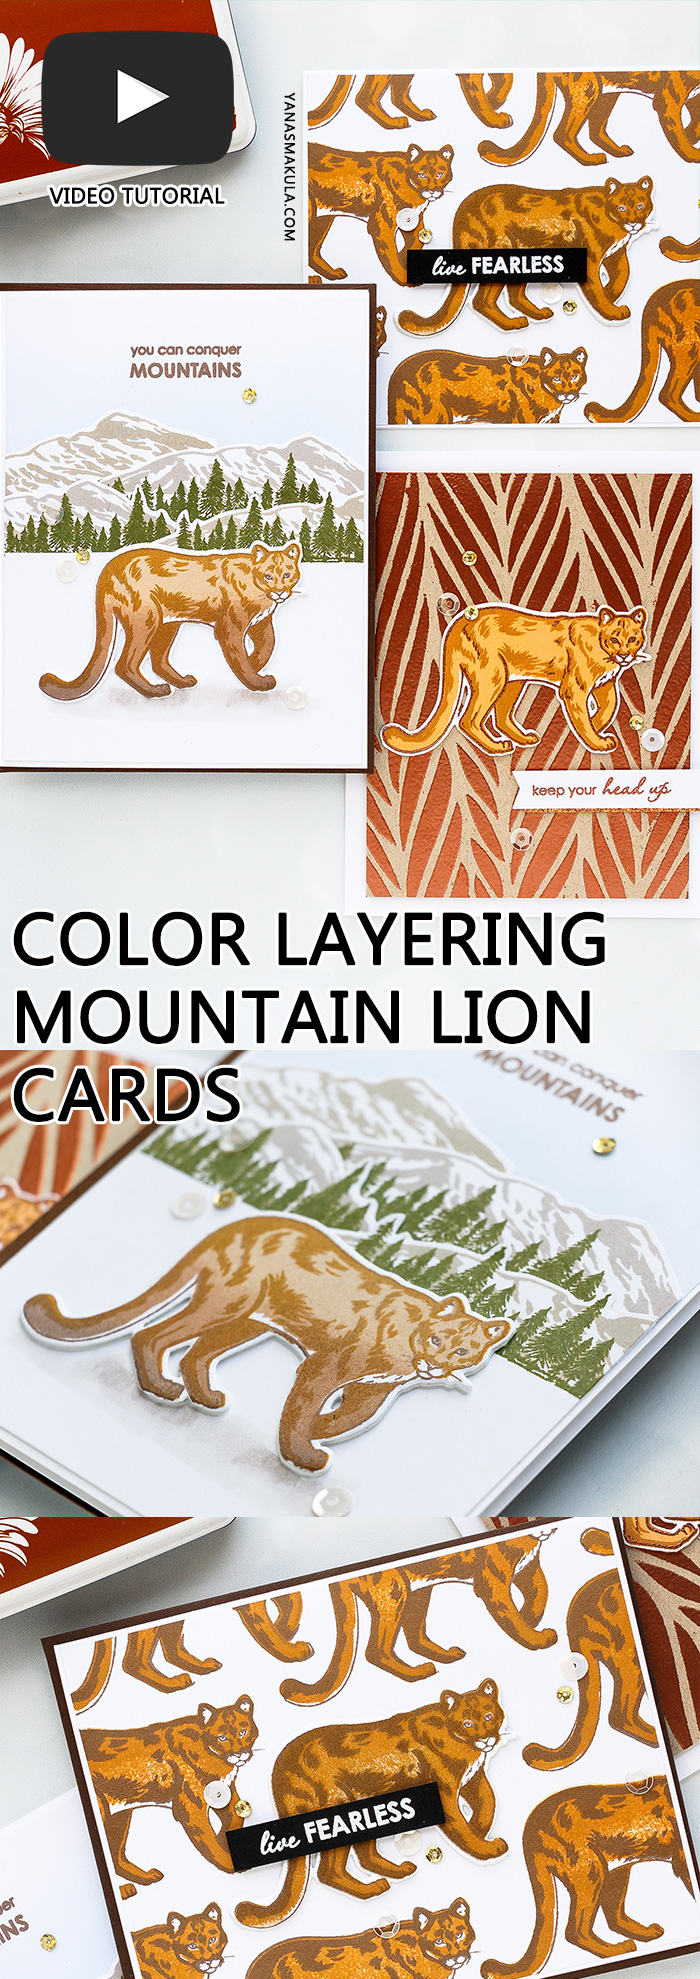 Hero Arts | Color Layering With Yana Series – Color Layering Mountain Lion Cards. Video tutorial by Yana Smakula #colorlayering #cardmaking #stamping #papercrafting #cleanandsimplecard #heroarts